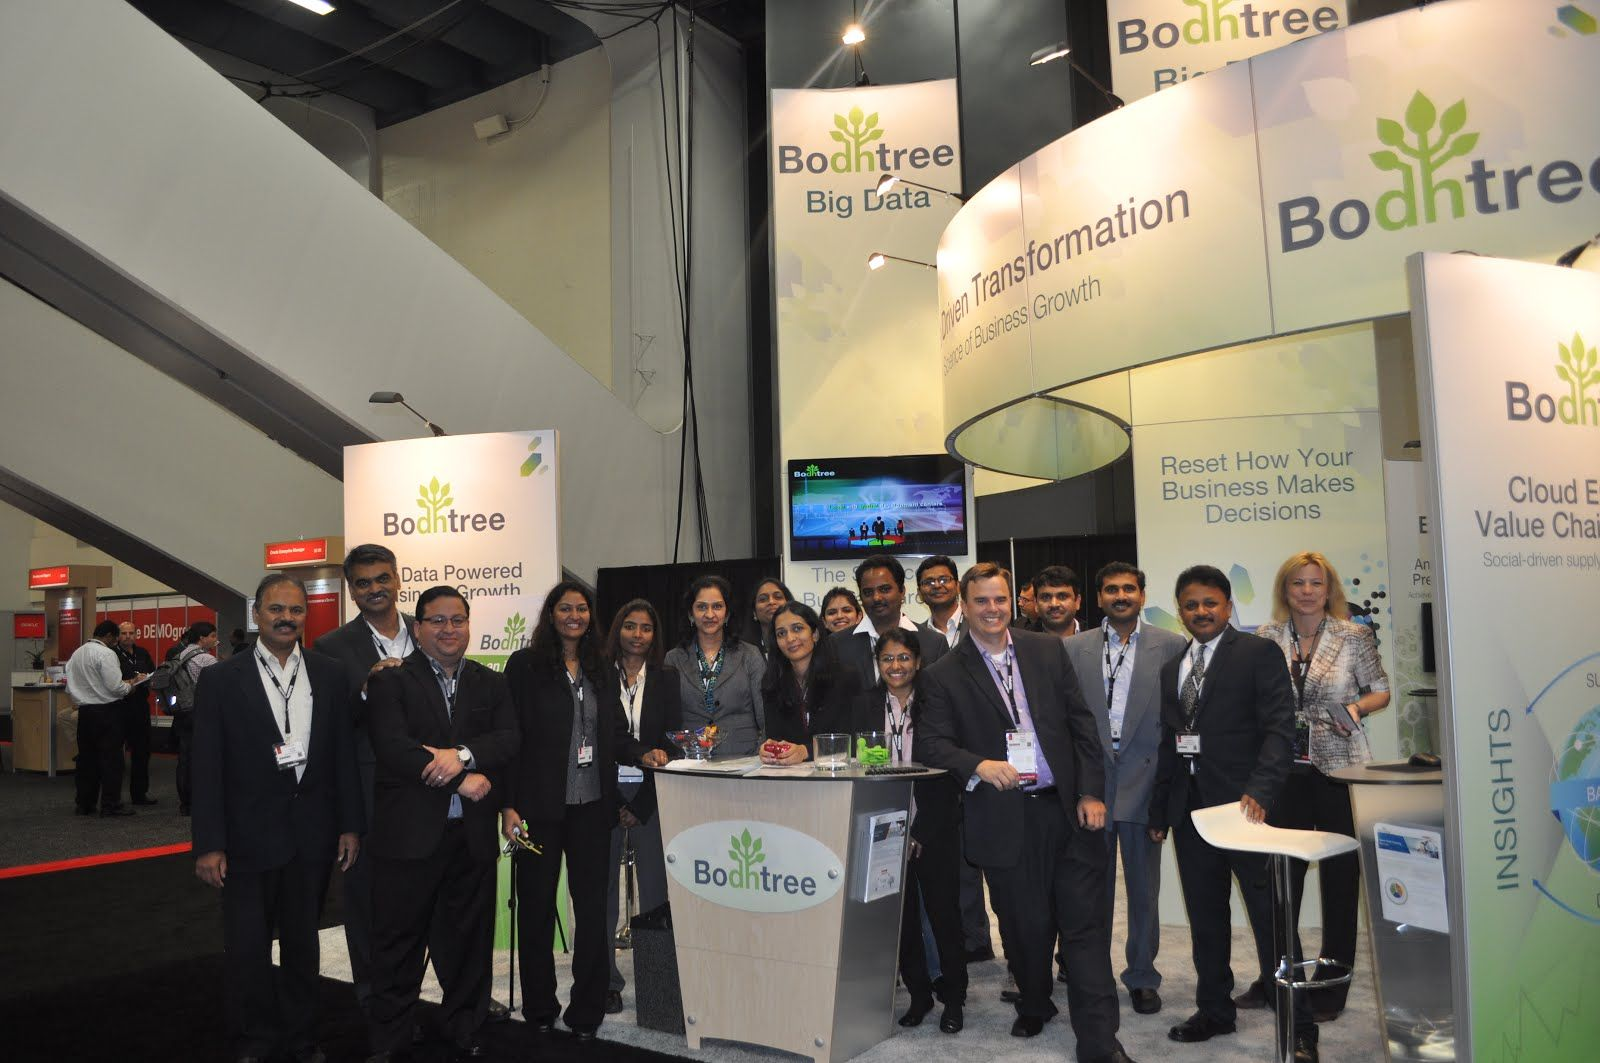 Thank You All For Visiting Bodhtree At Oow2013 We Hope To Work